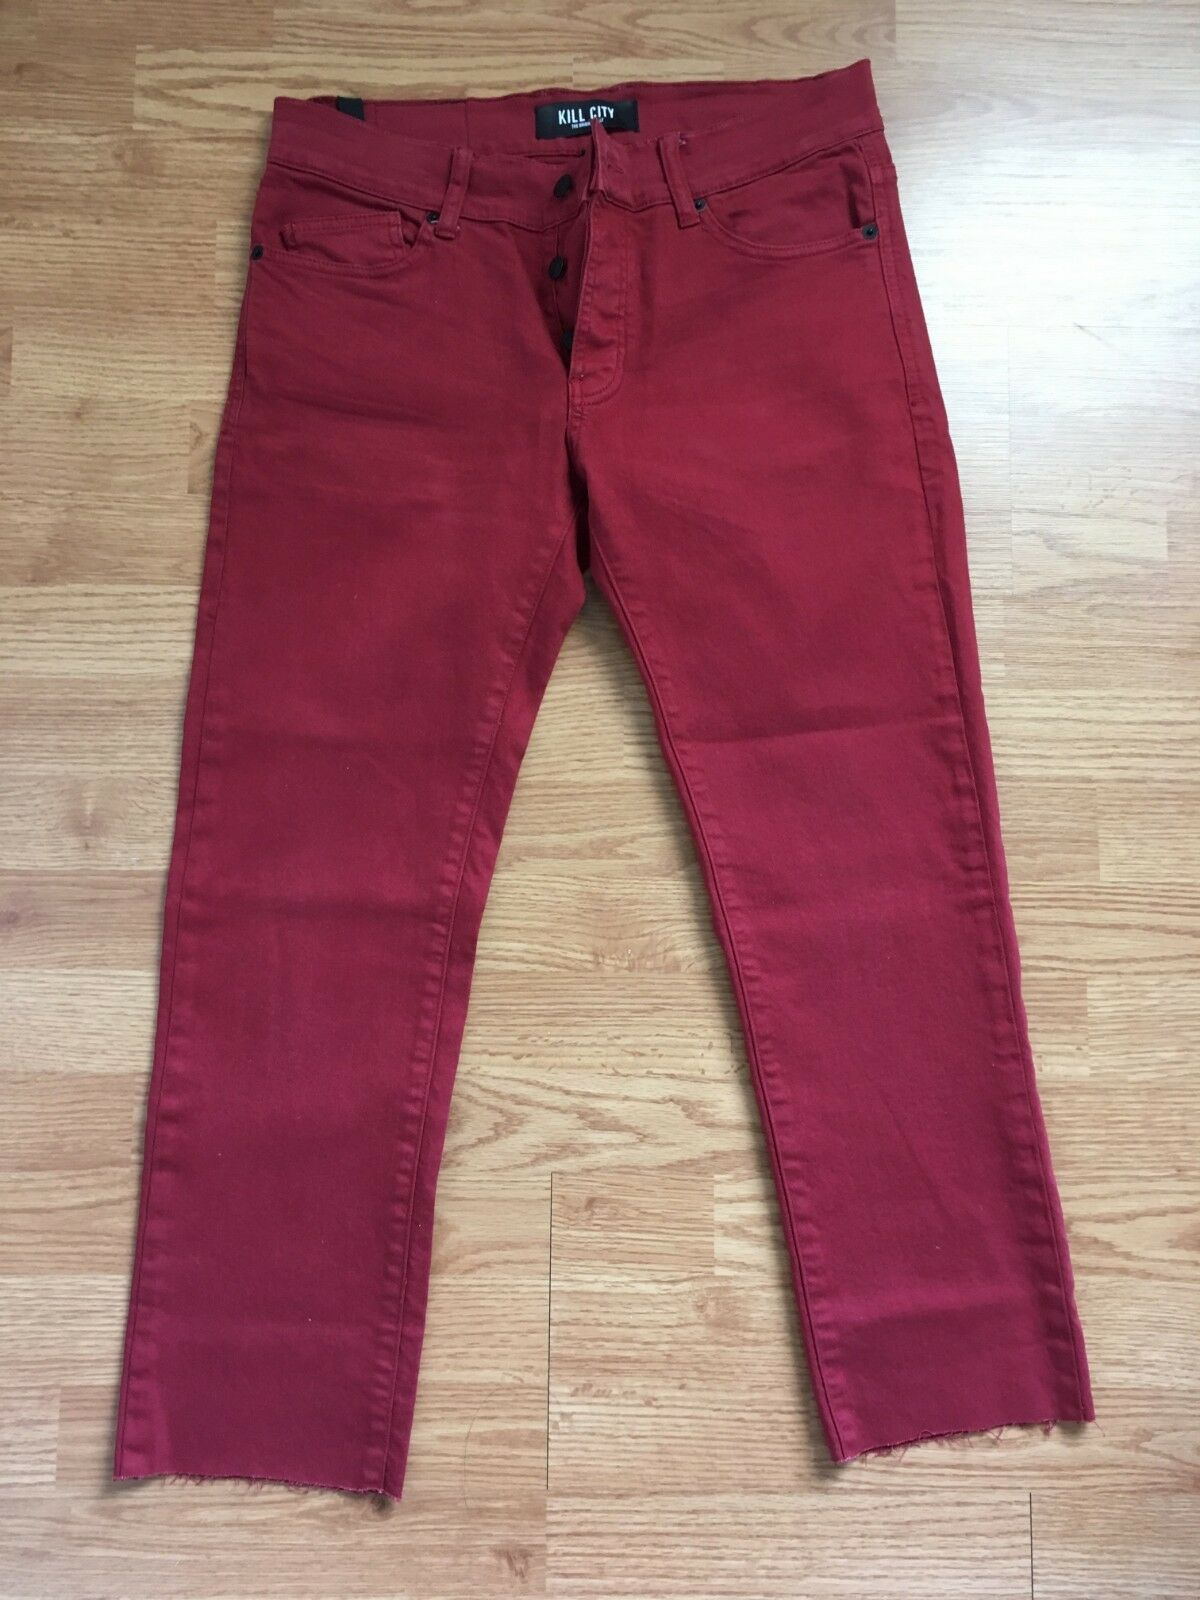 KILL CITY SLIP RED PANT CUT CAPRI HIGH WATER SLIM FIT RED button fly 32 34